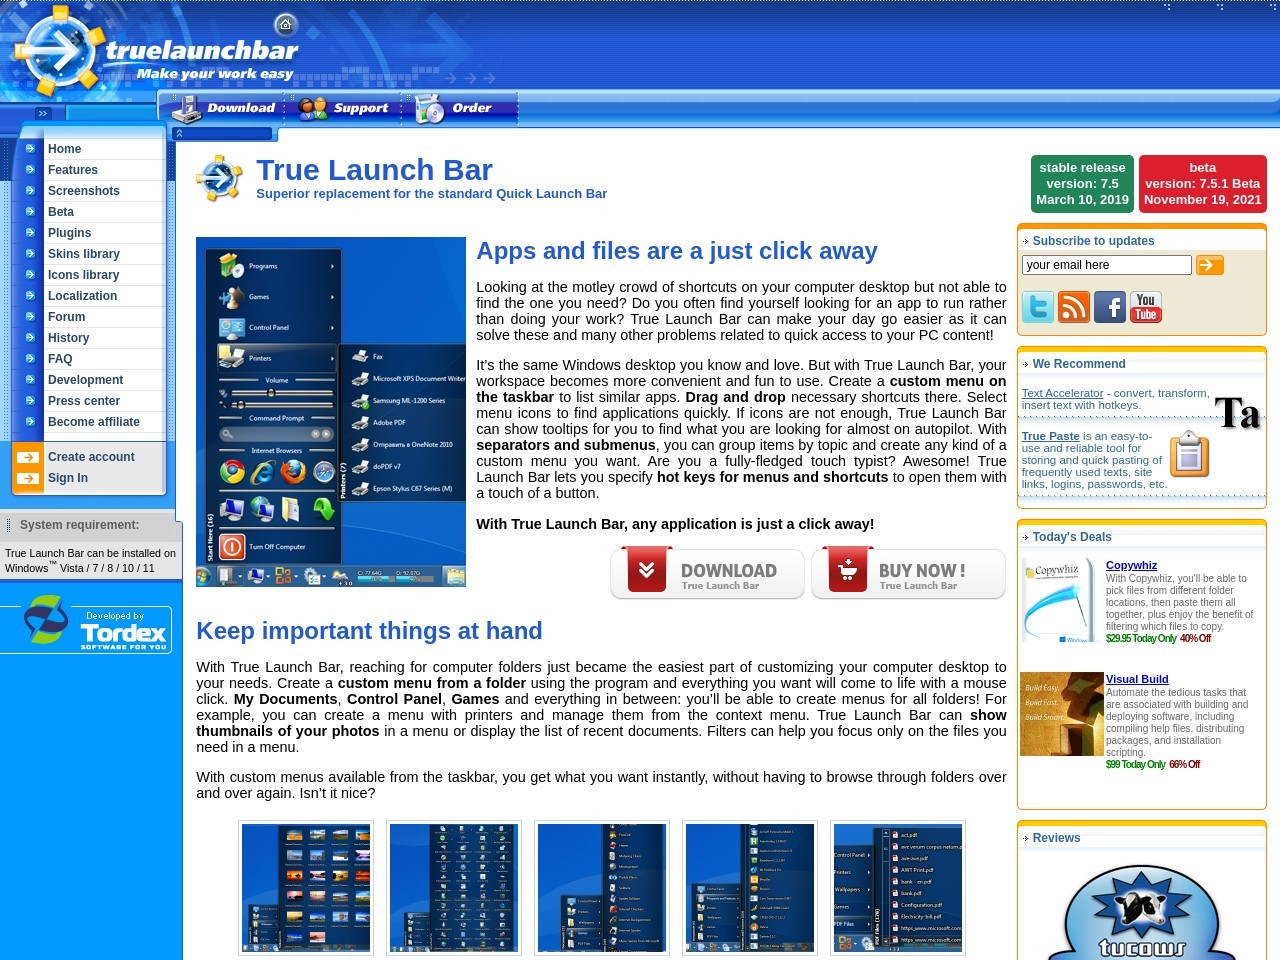 True Launch Bar